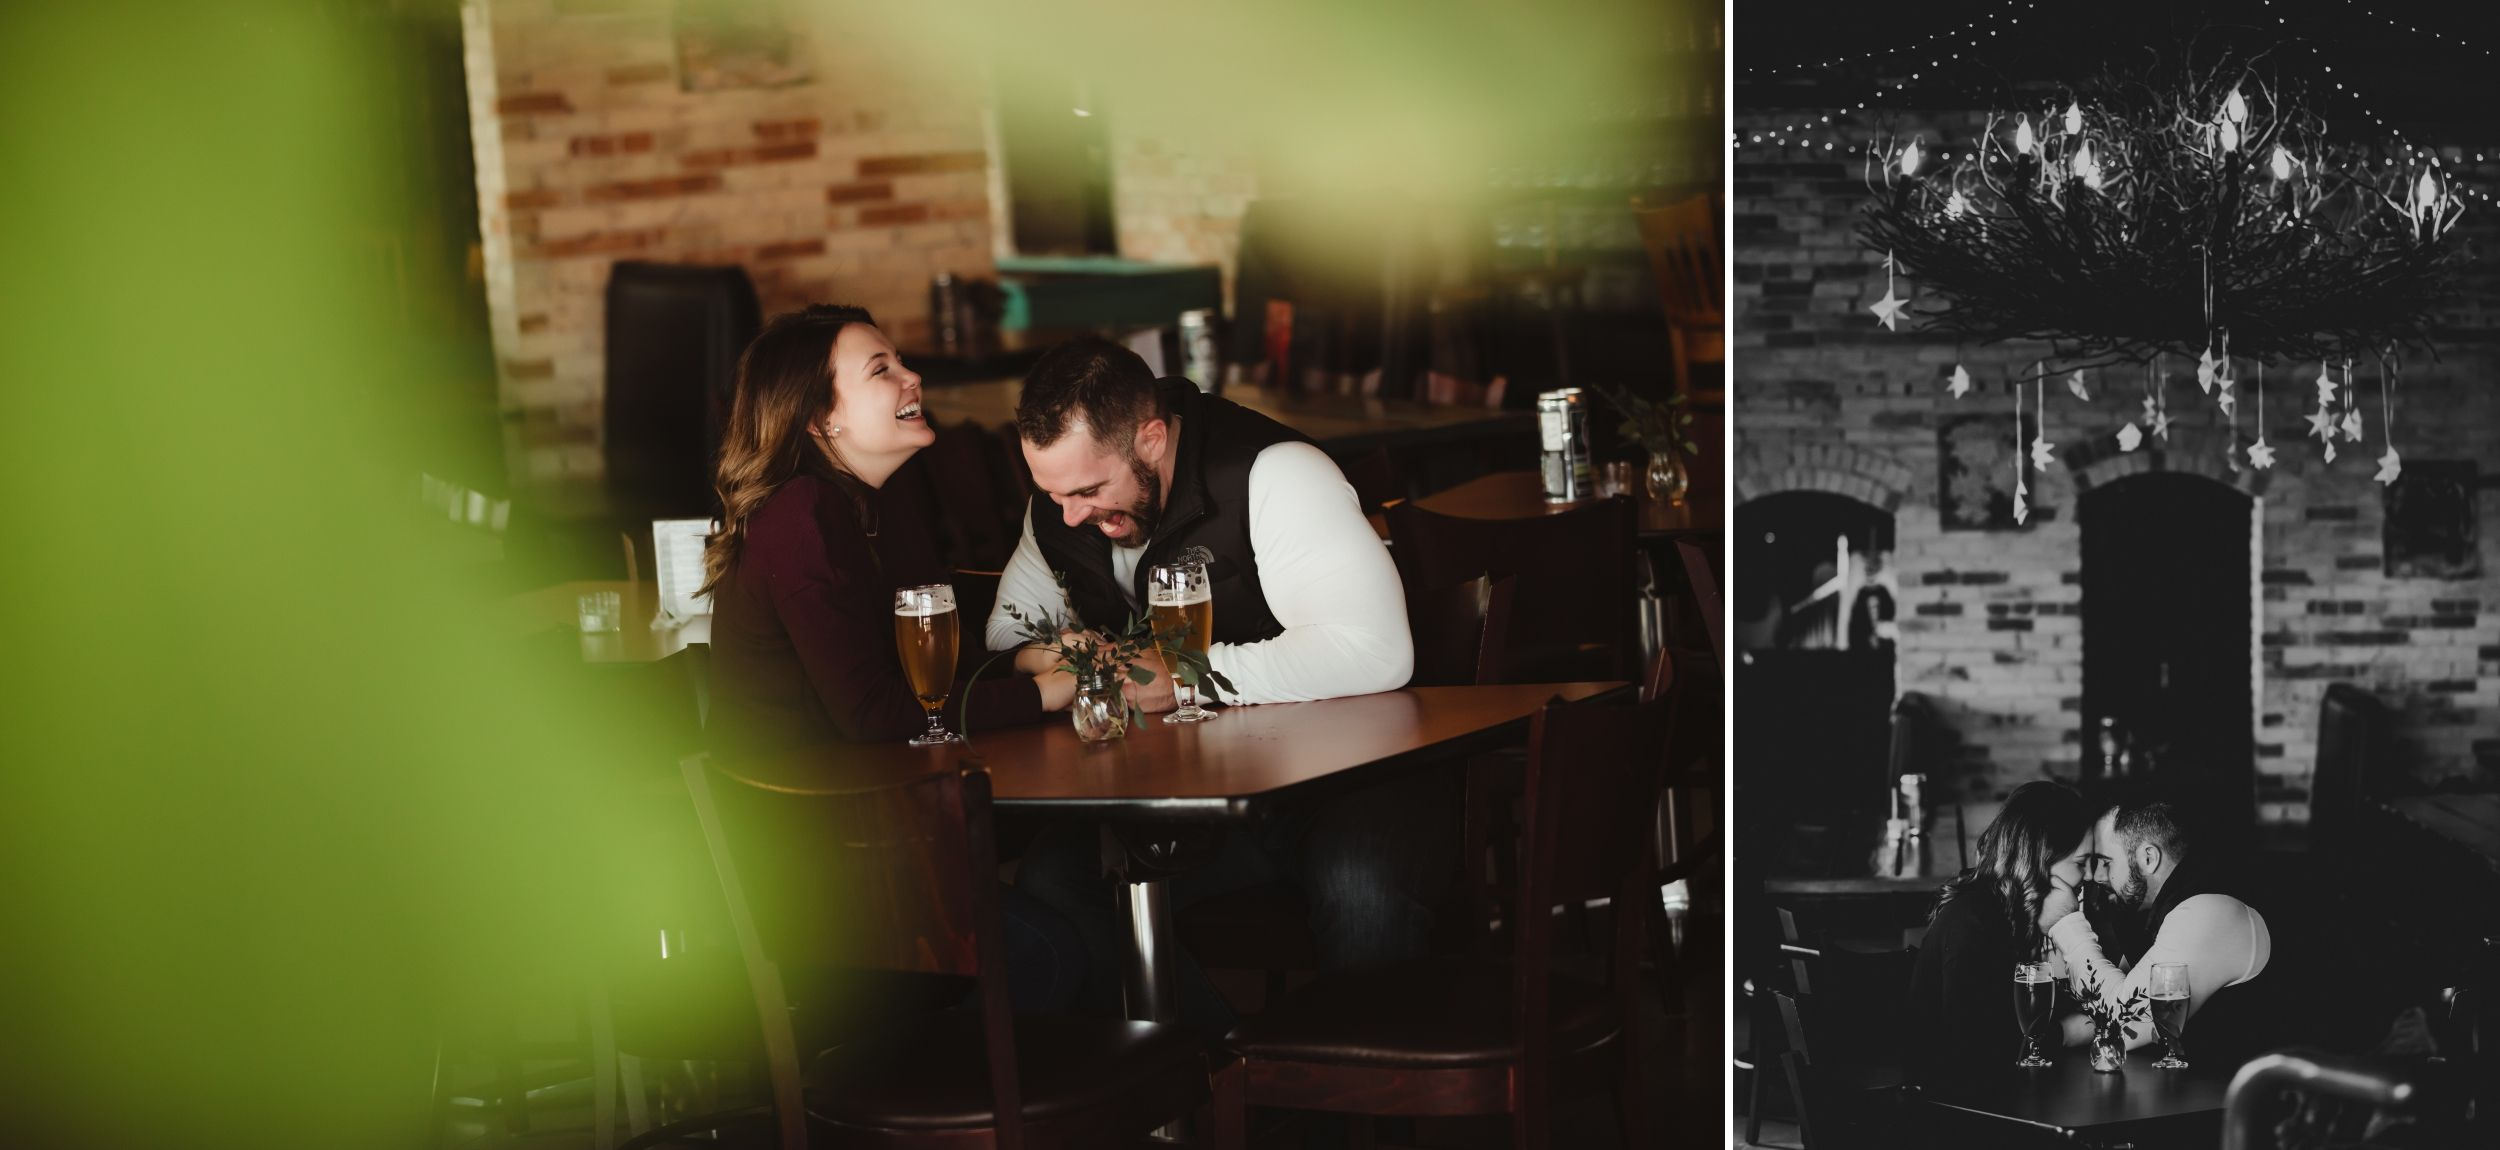 Man and woman laughing together at a brewery table.